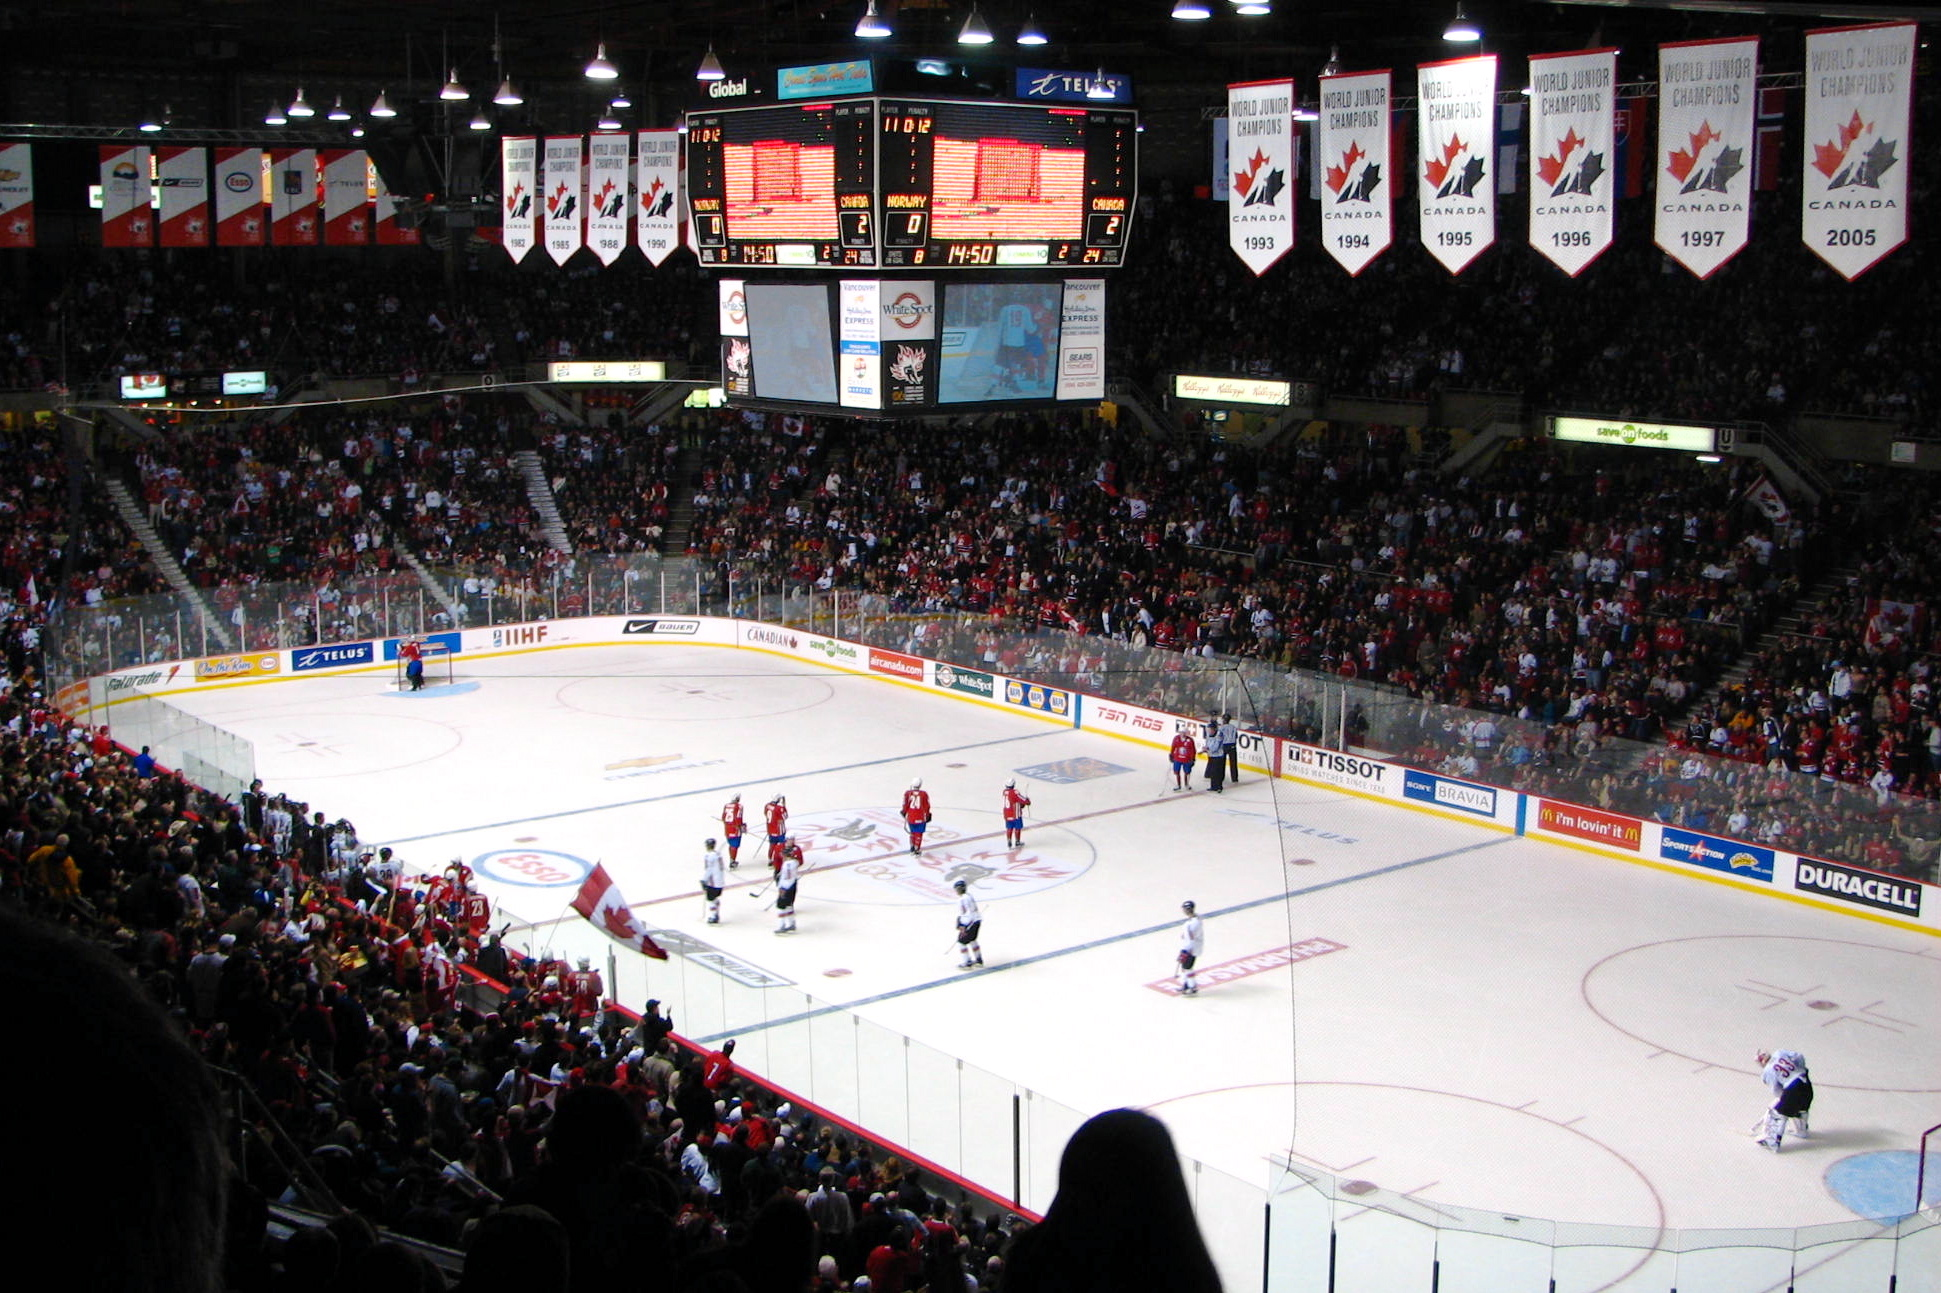 FileNorway Vs Canada WJC 2006